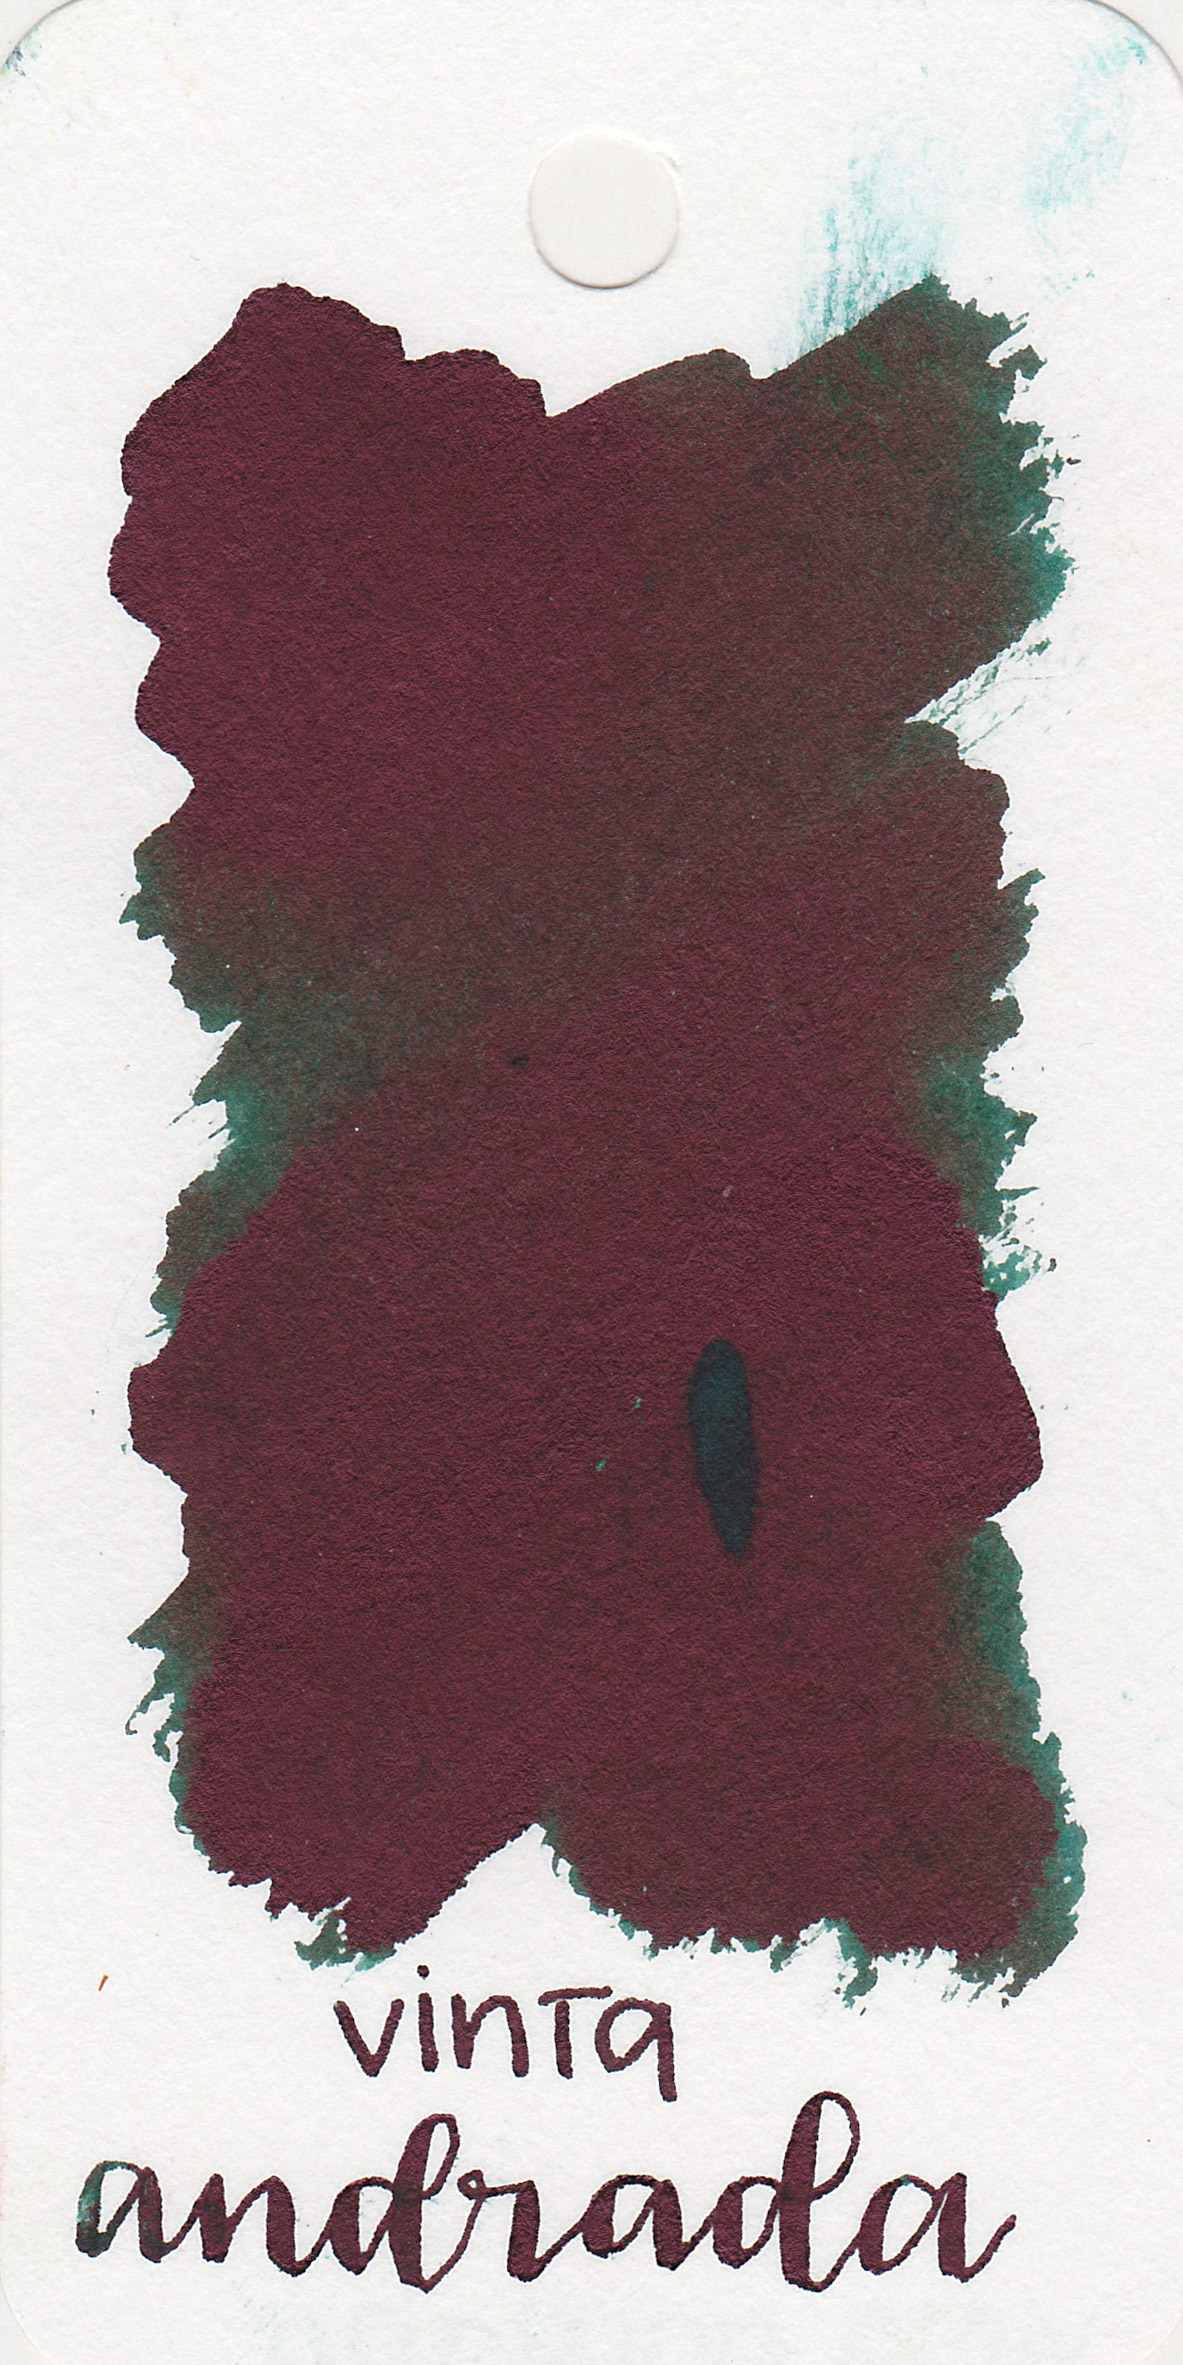 The color: - I don't know why this ink is called Teal Andrada because it's a dark forest green with dark red sheen, not teal.